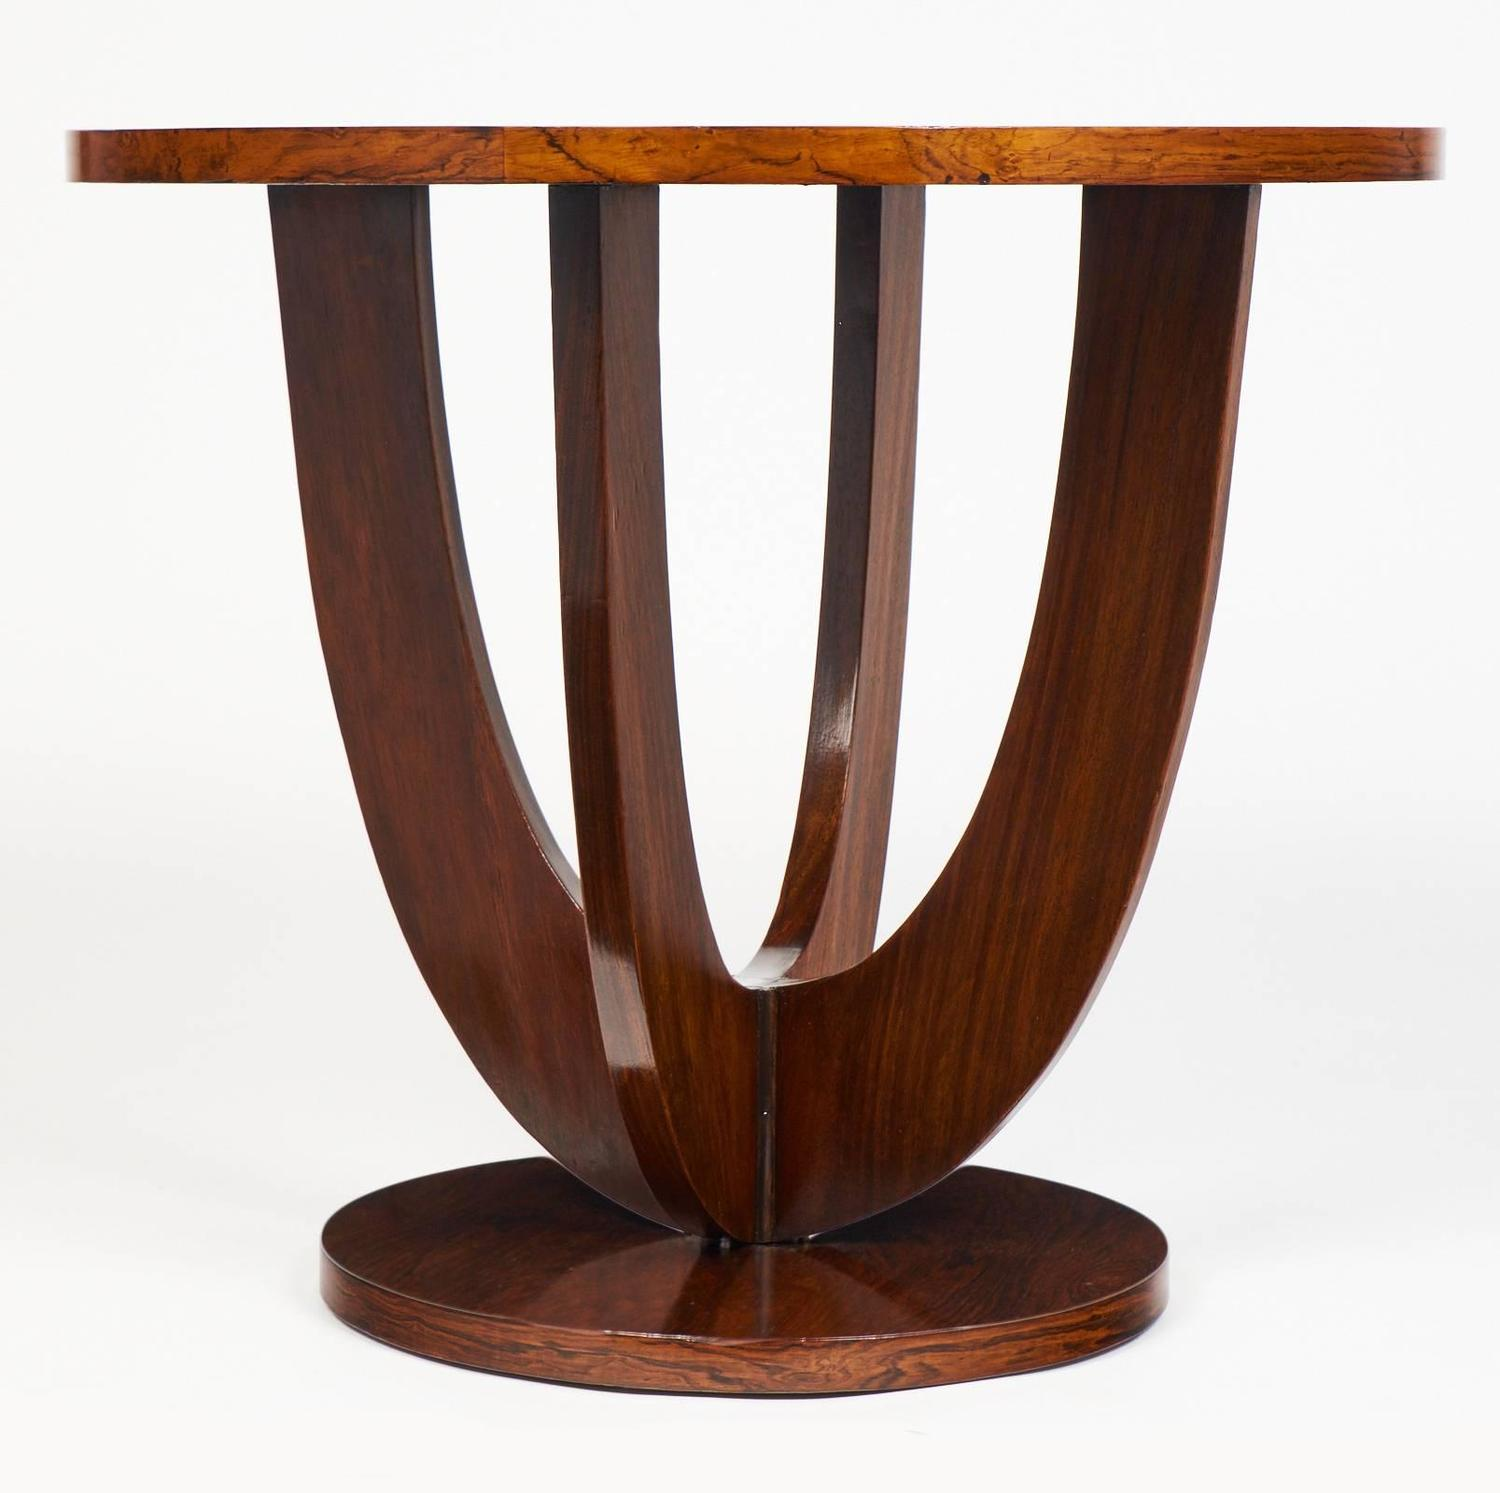 Art deco period french gueridon for sale at 1stdibs for Art deco period